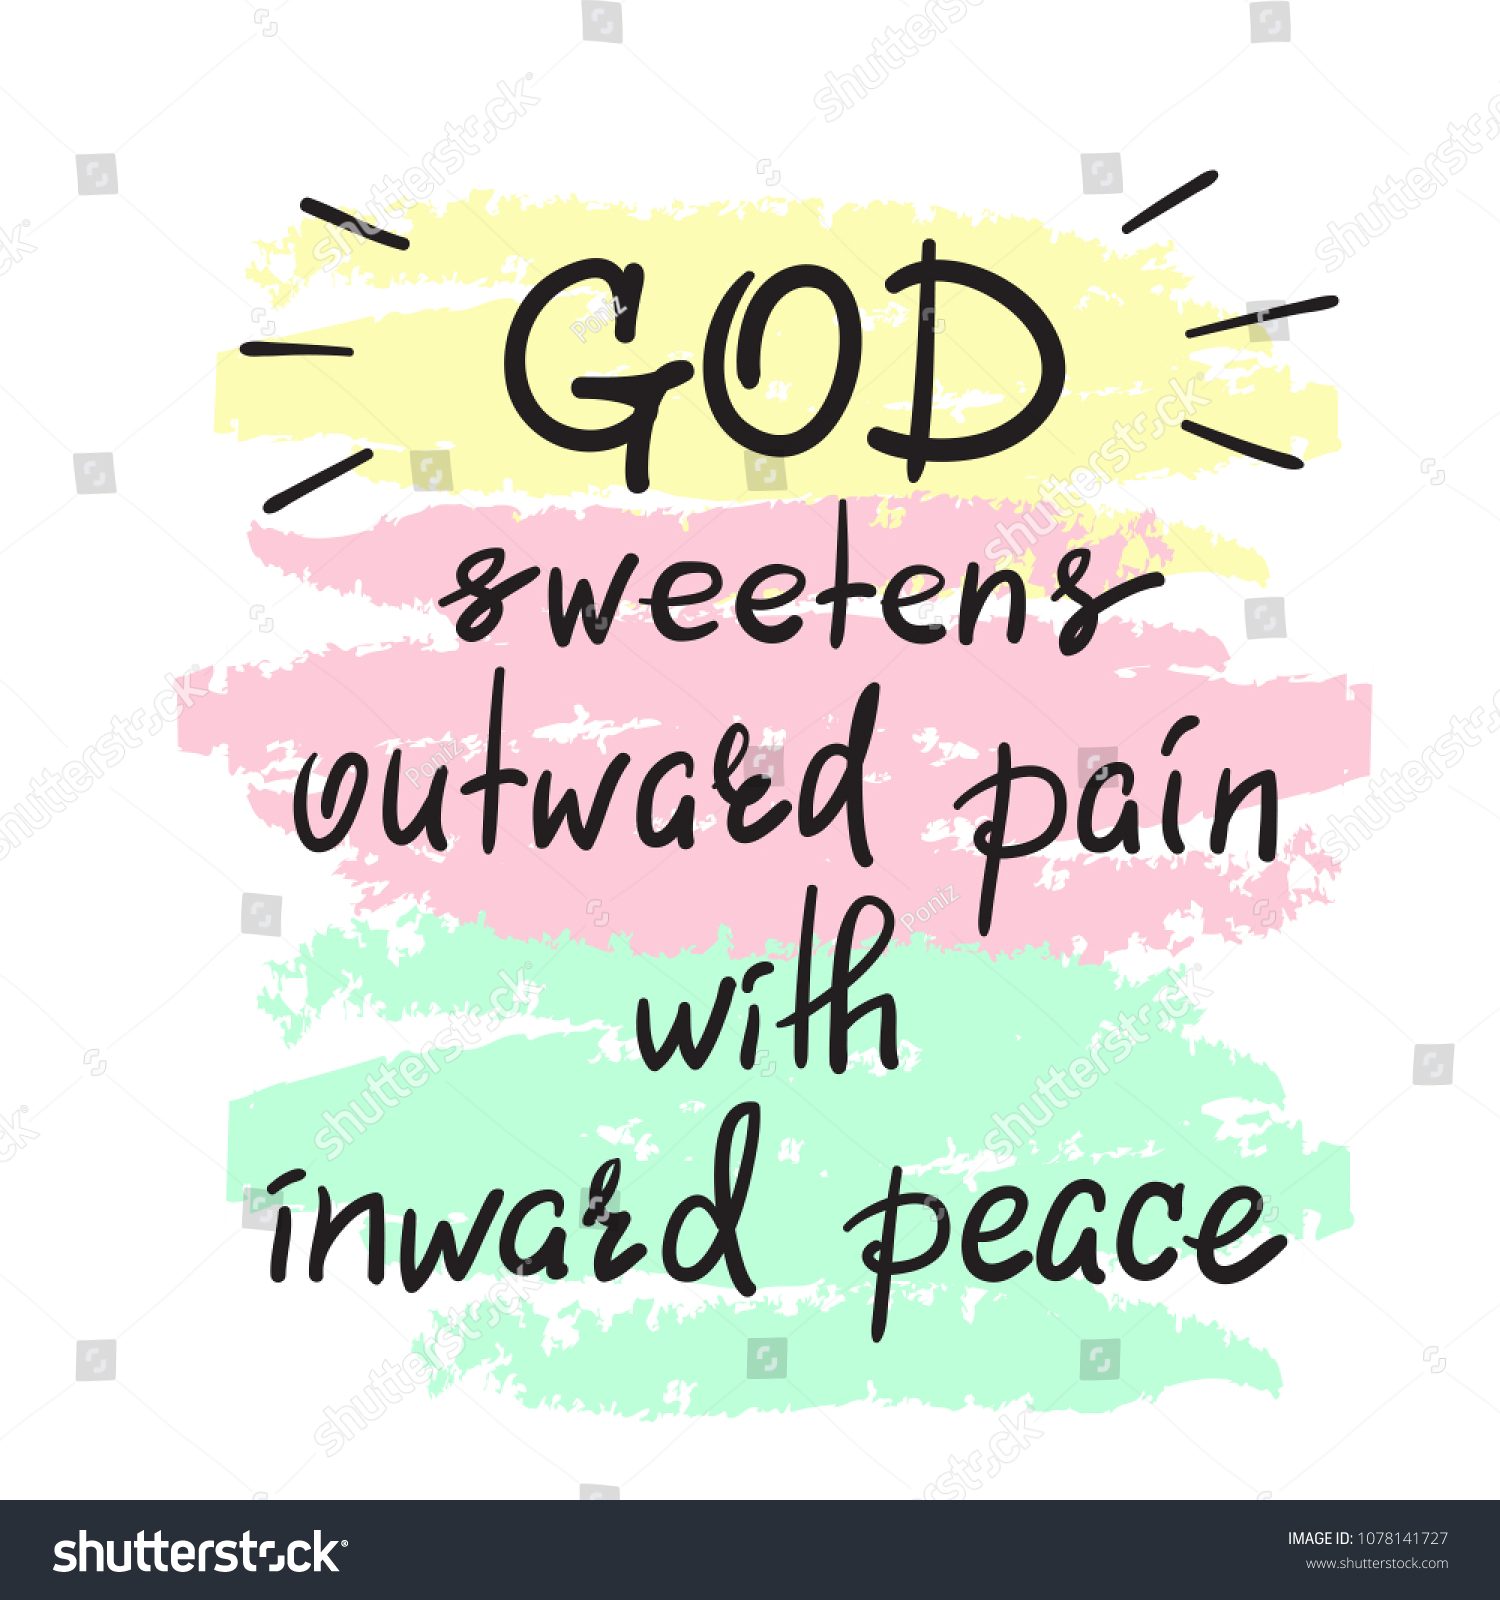 God Sweetens Outward Pain Inward Peace Stock Vector (Royalty Free